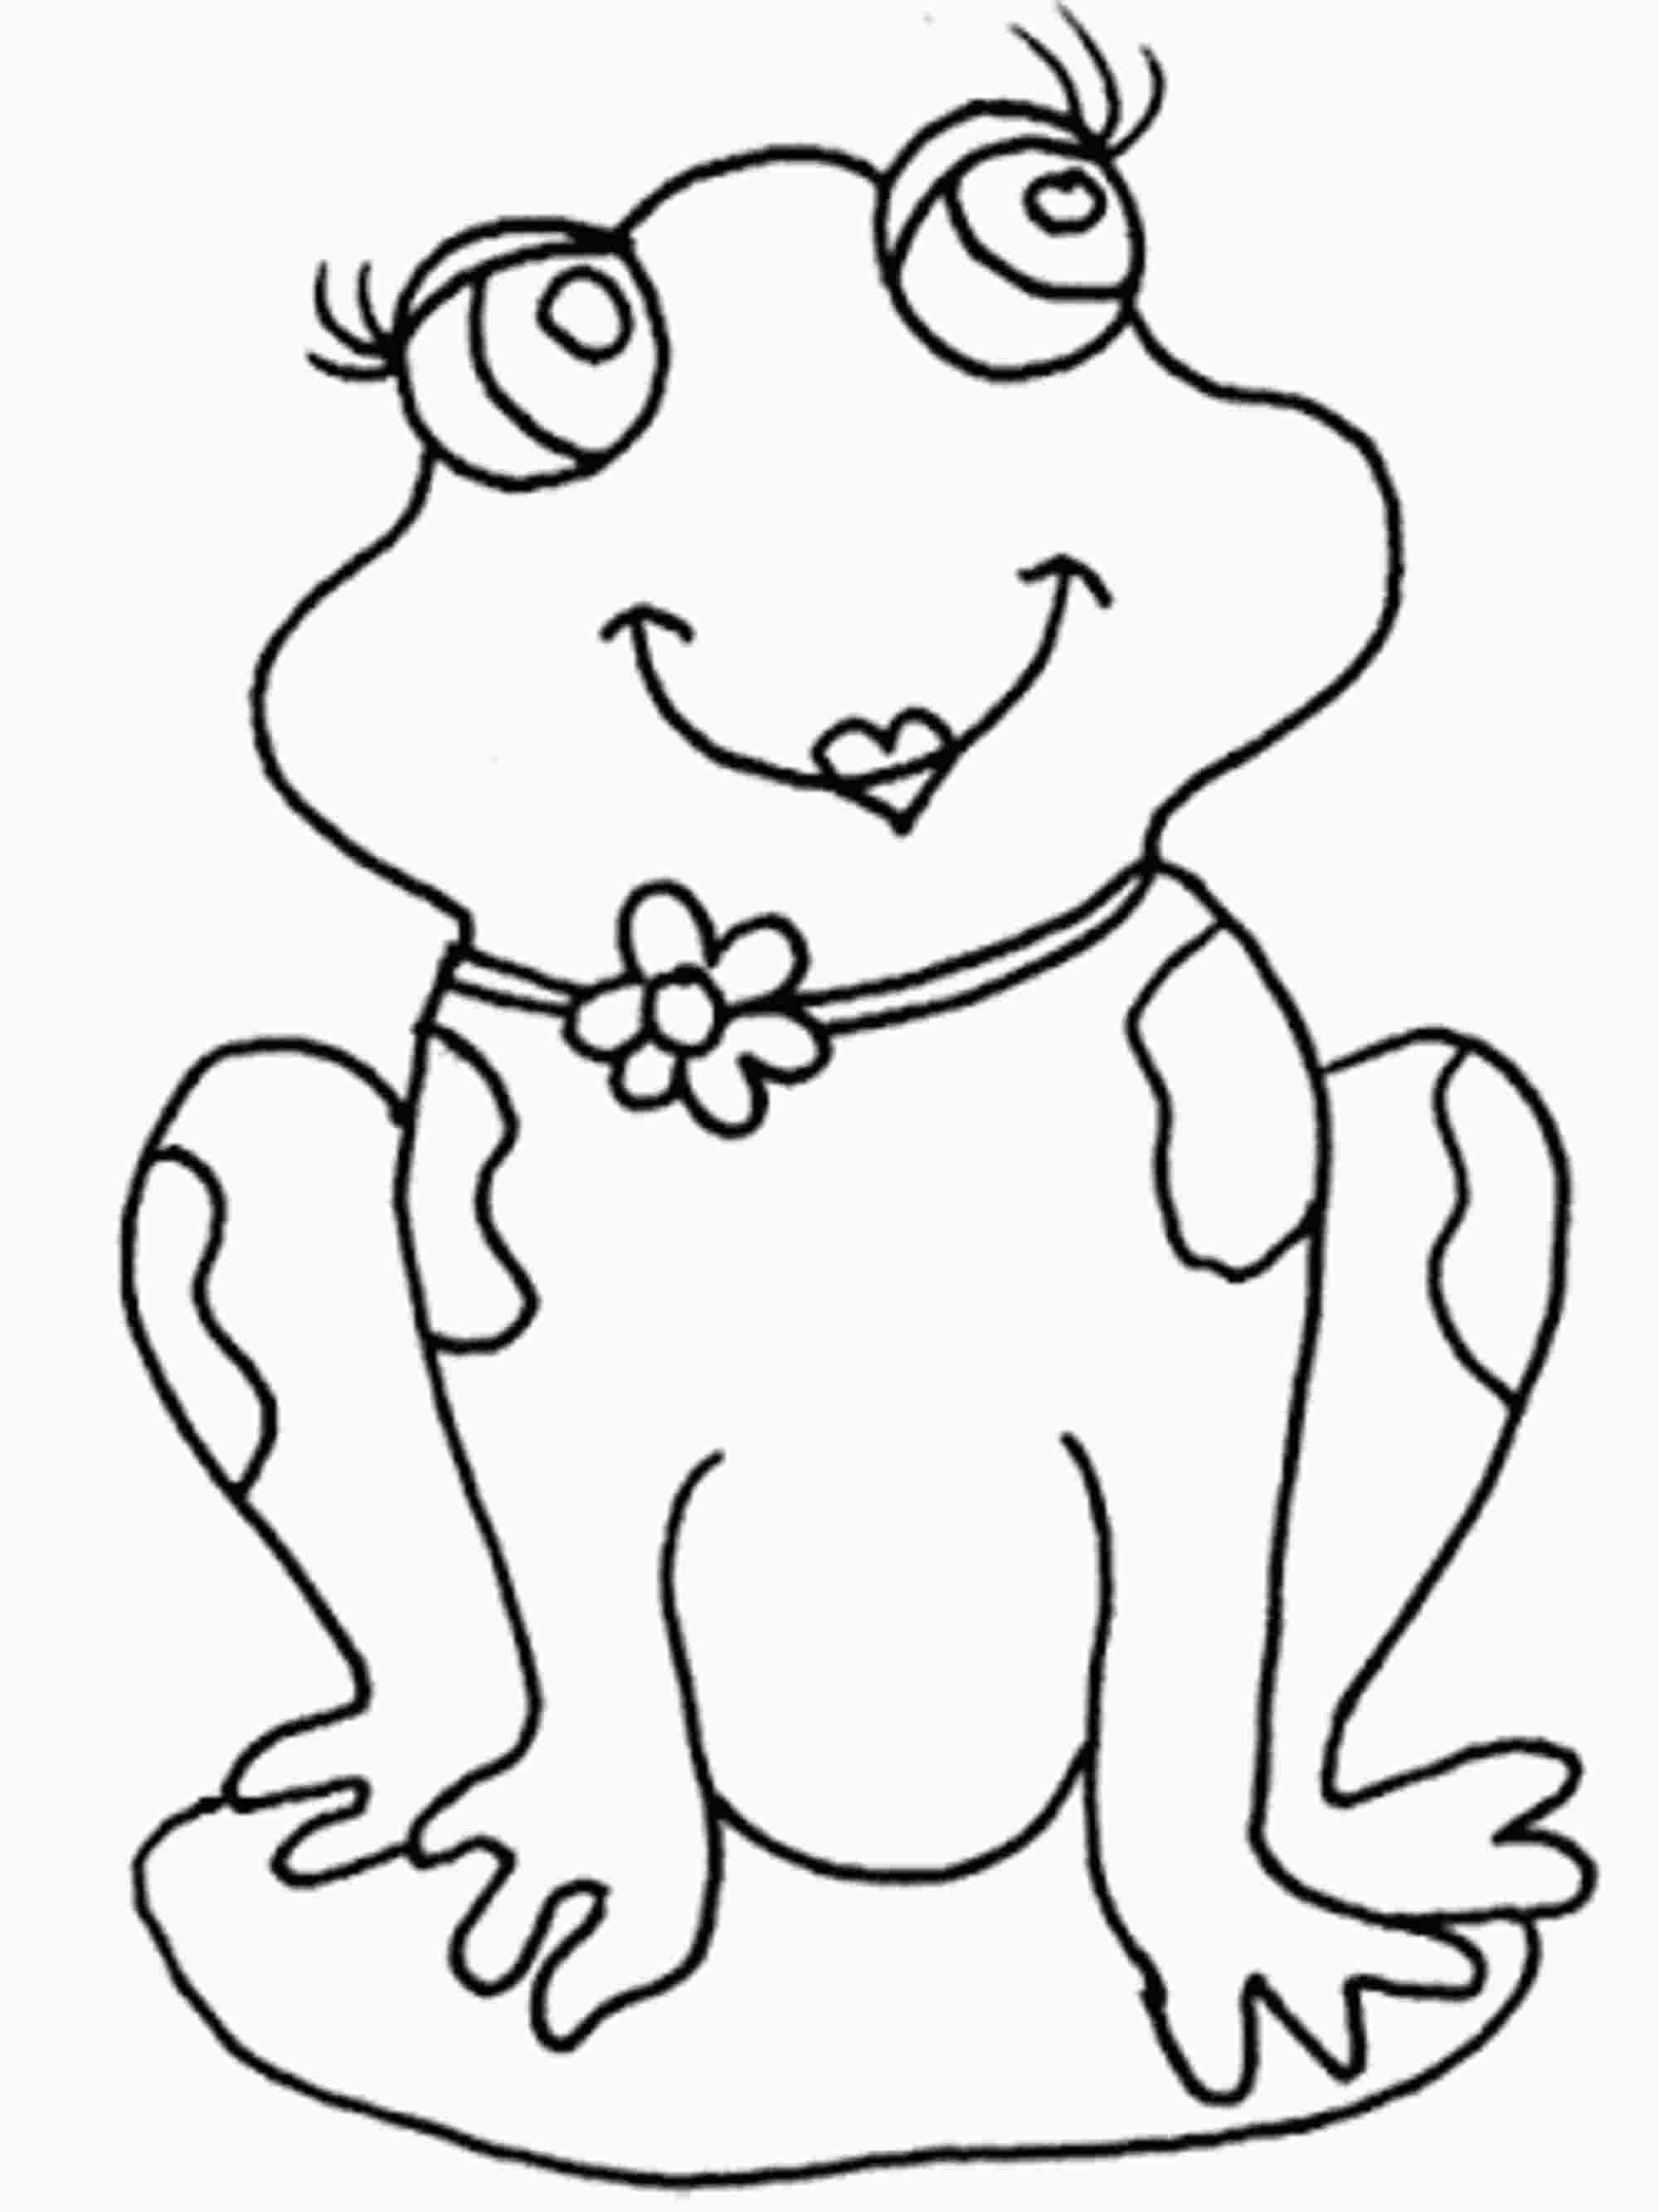 Frog Coloring Pages for Girls